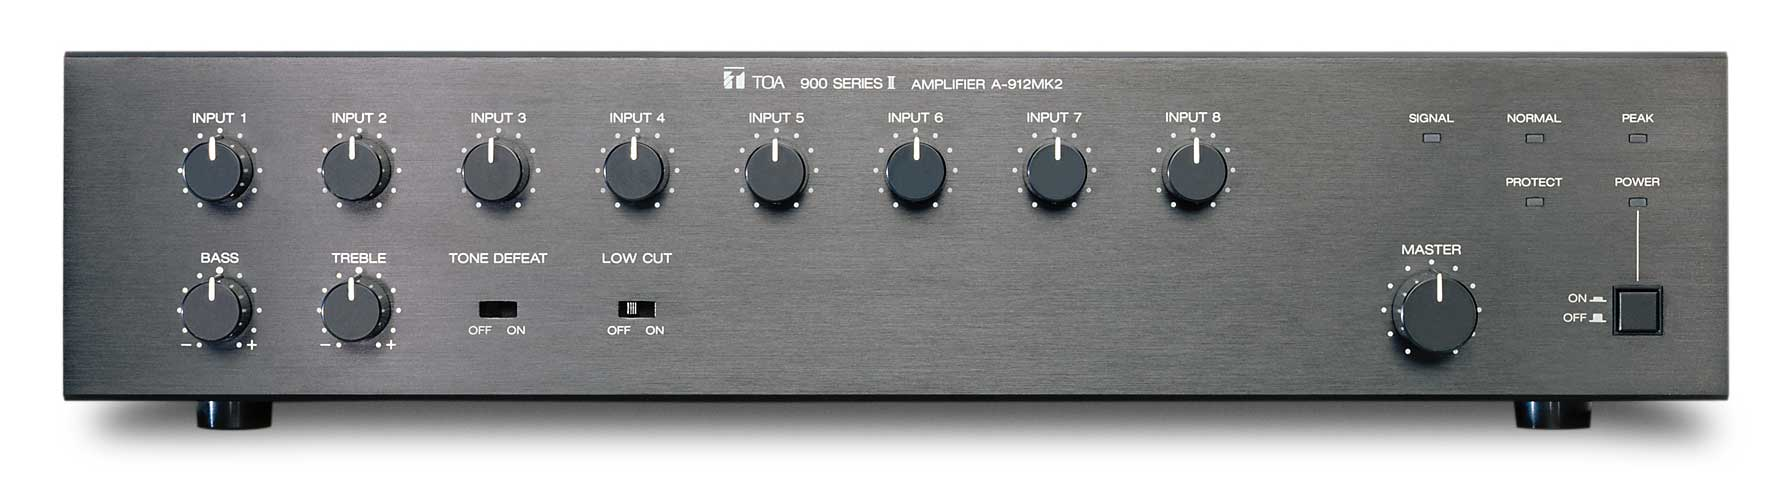 toa 900 series amplifier manual